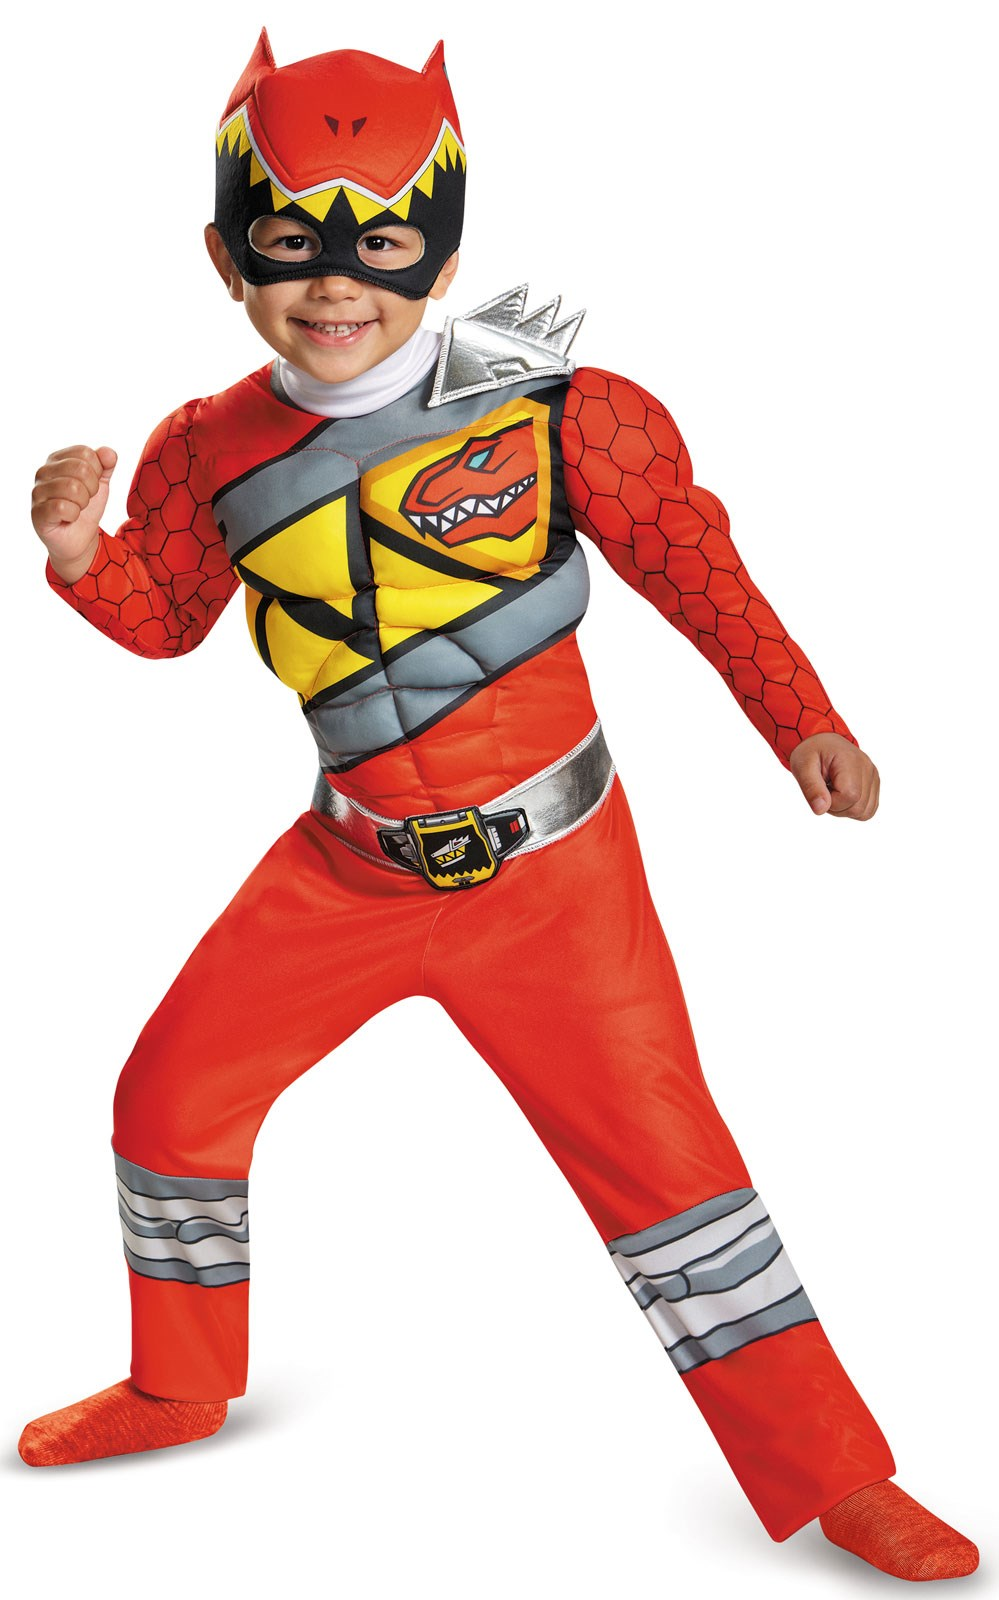 Power Rangers Dino Charge: Toddler Red Ranger Muscle Costume